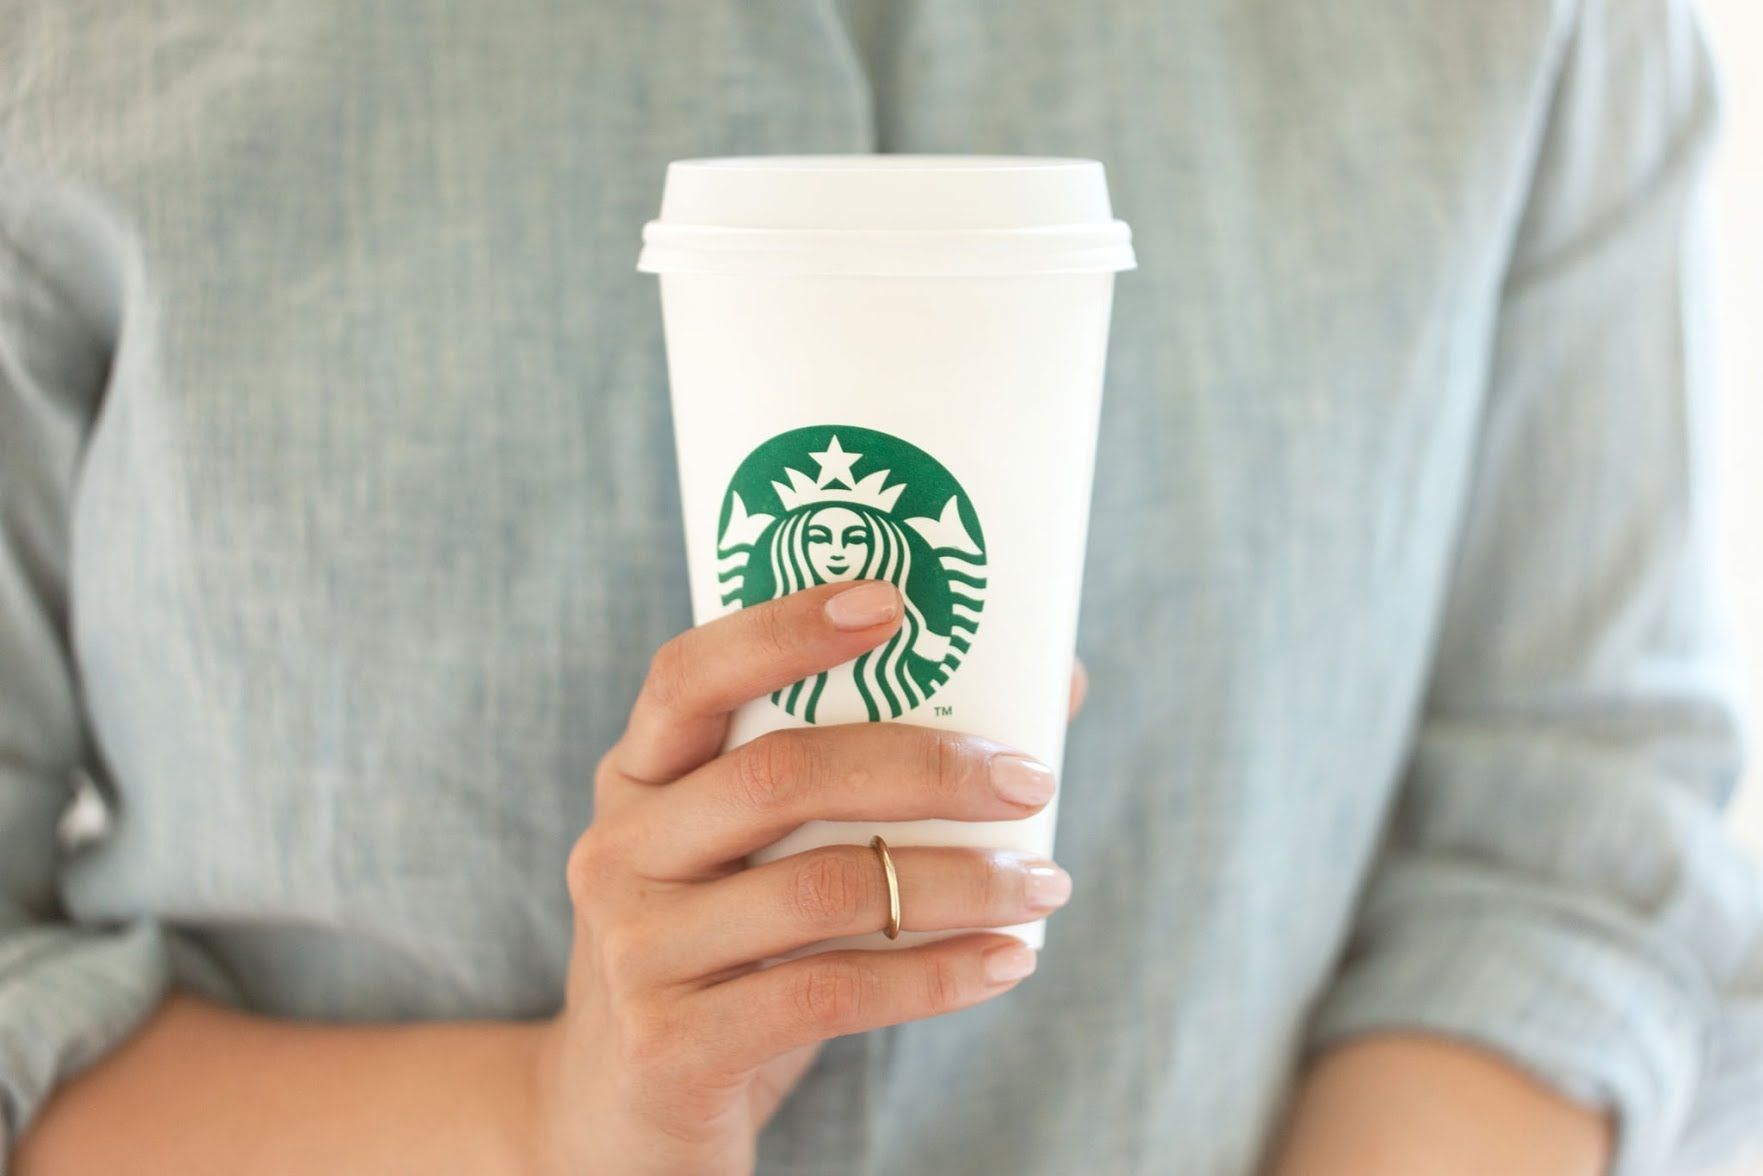 Sip on These Low-Calorie Starbucks Drinks — All 150 Calories or Fewer! #healthystarbucksdrinks Sip on These Low-Calorie Starbucks Drinks — All 150 Calories or Fewer! #healthystarbucksdrinks